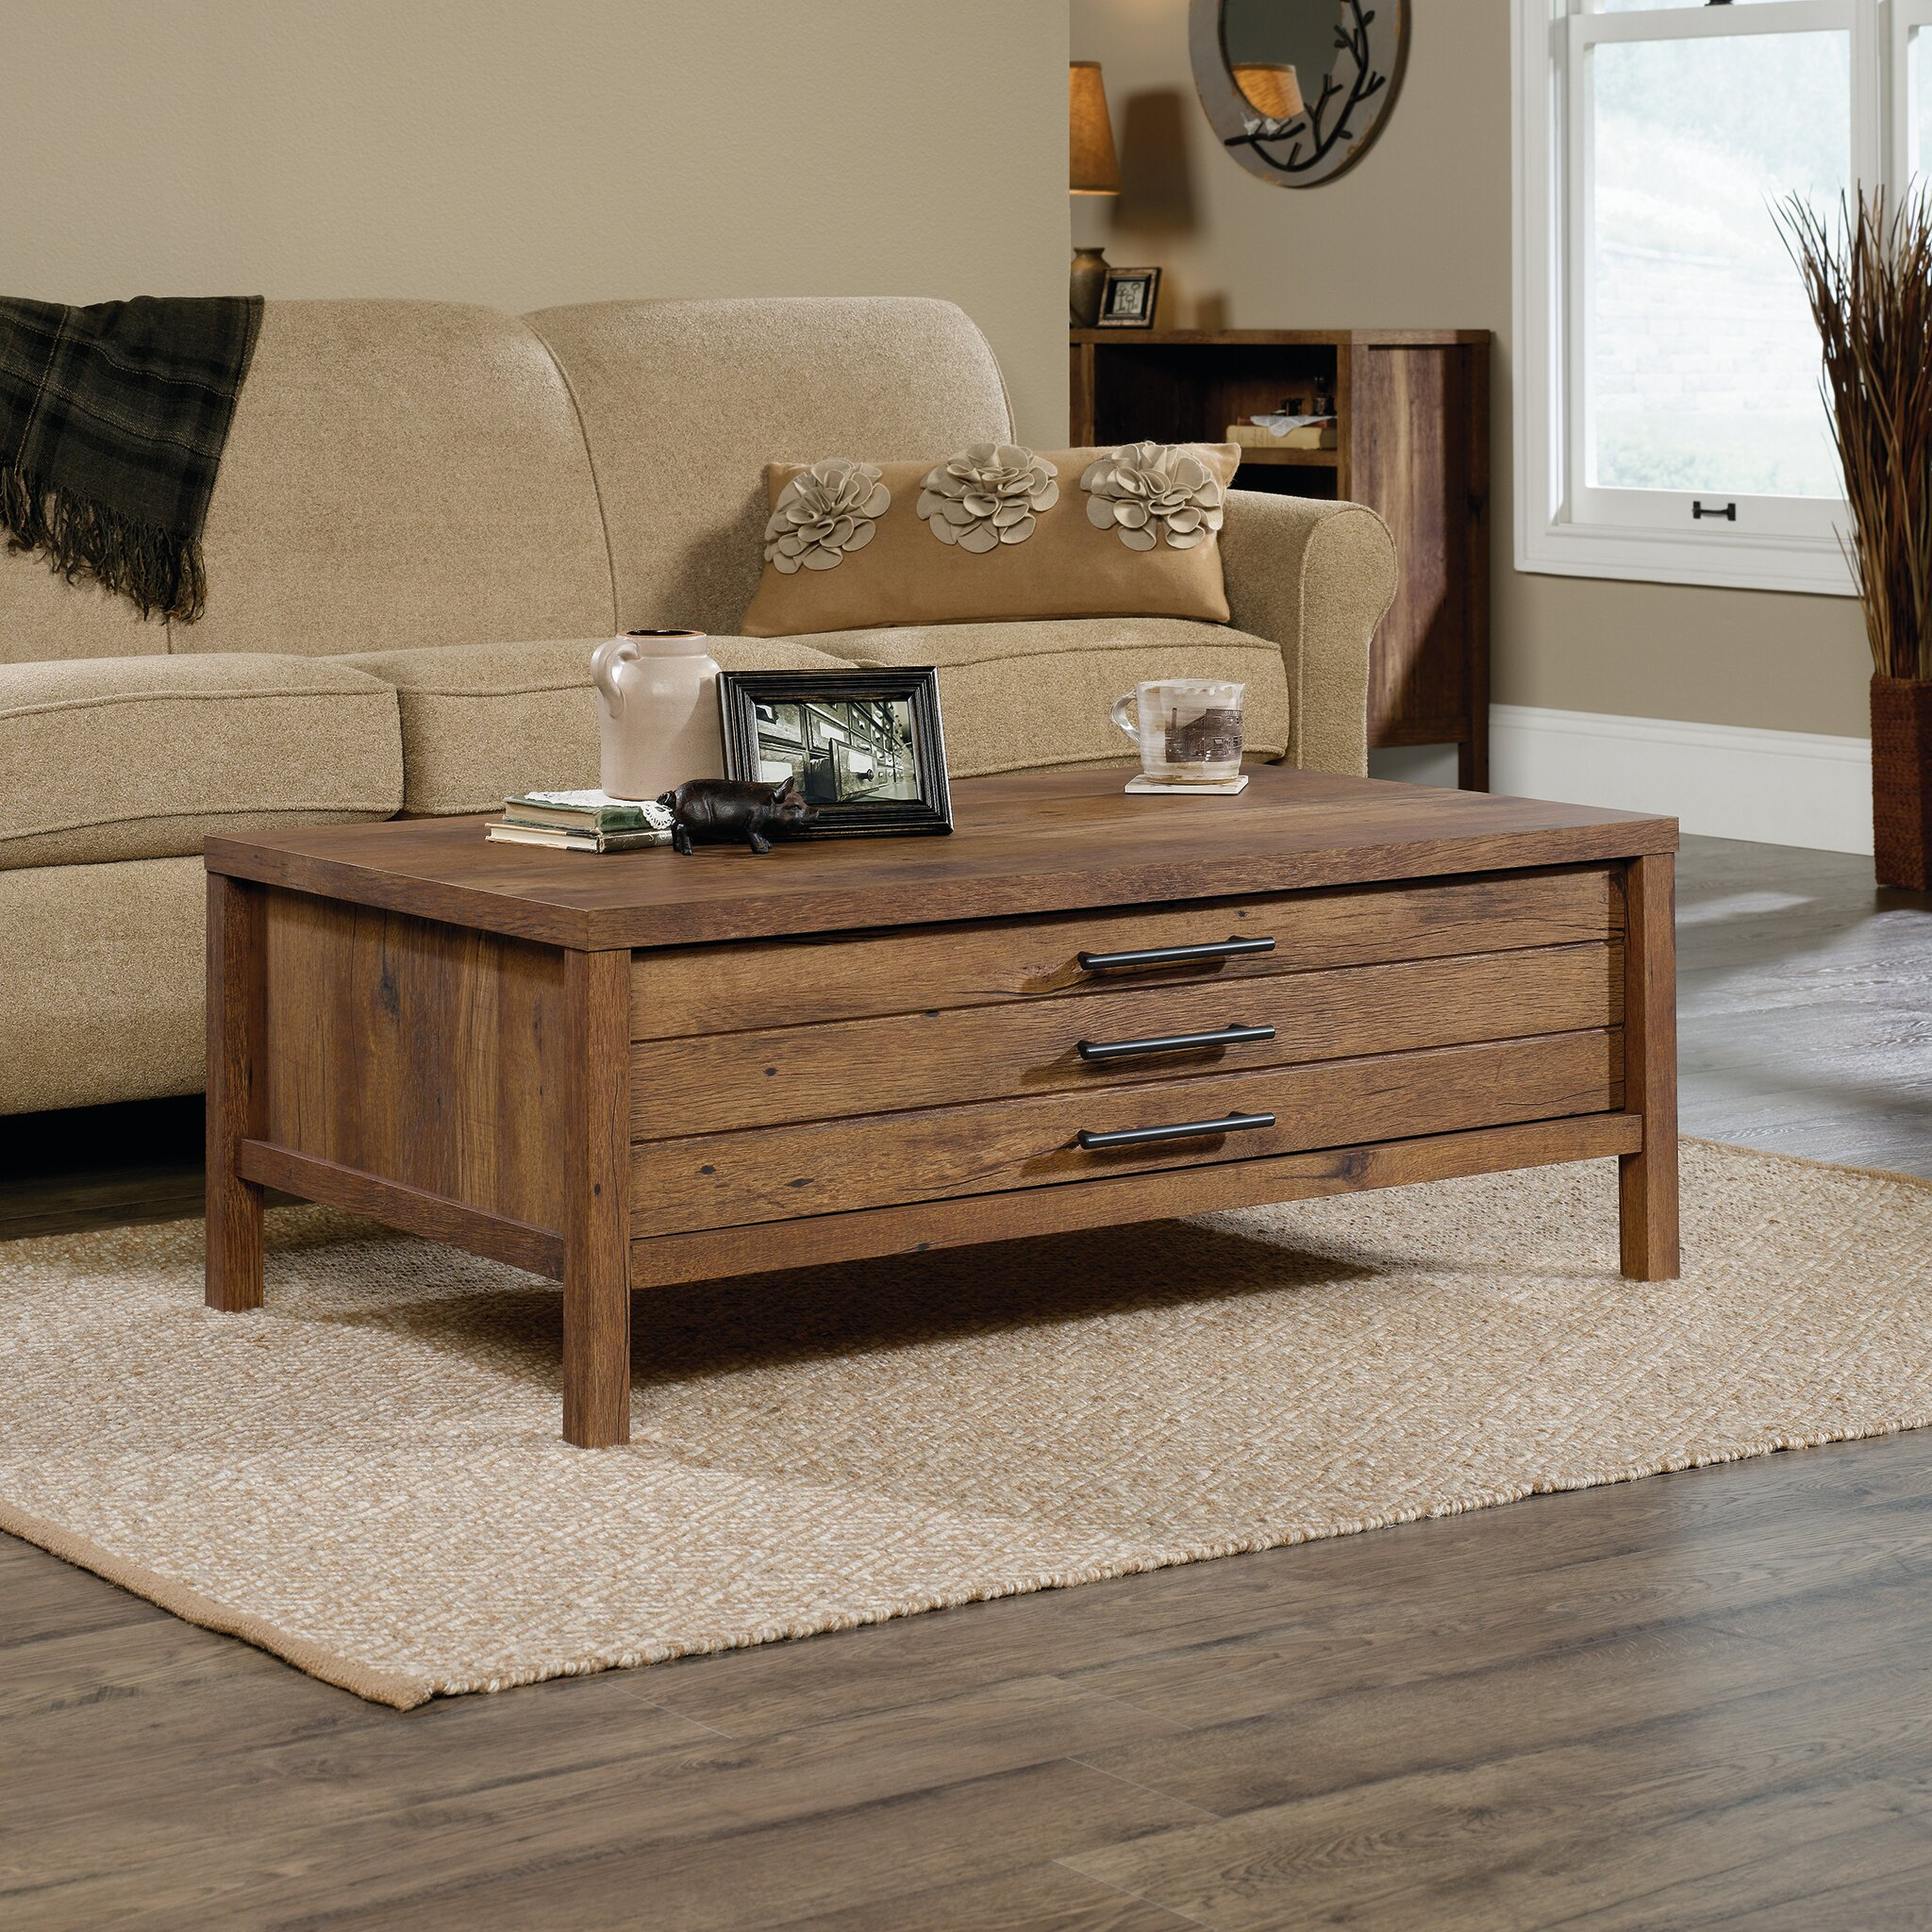 Laurel foundry modern farmhouse odile coffee table for Modern farmhouse coffee table